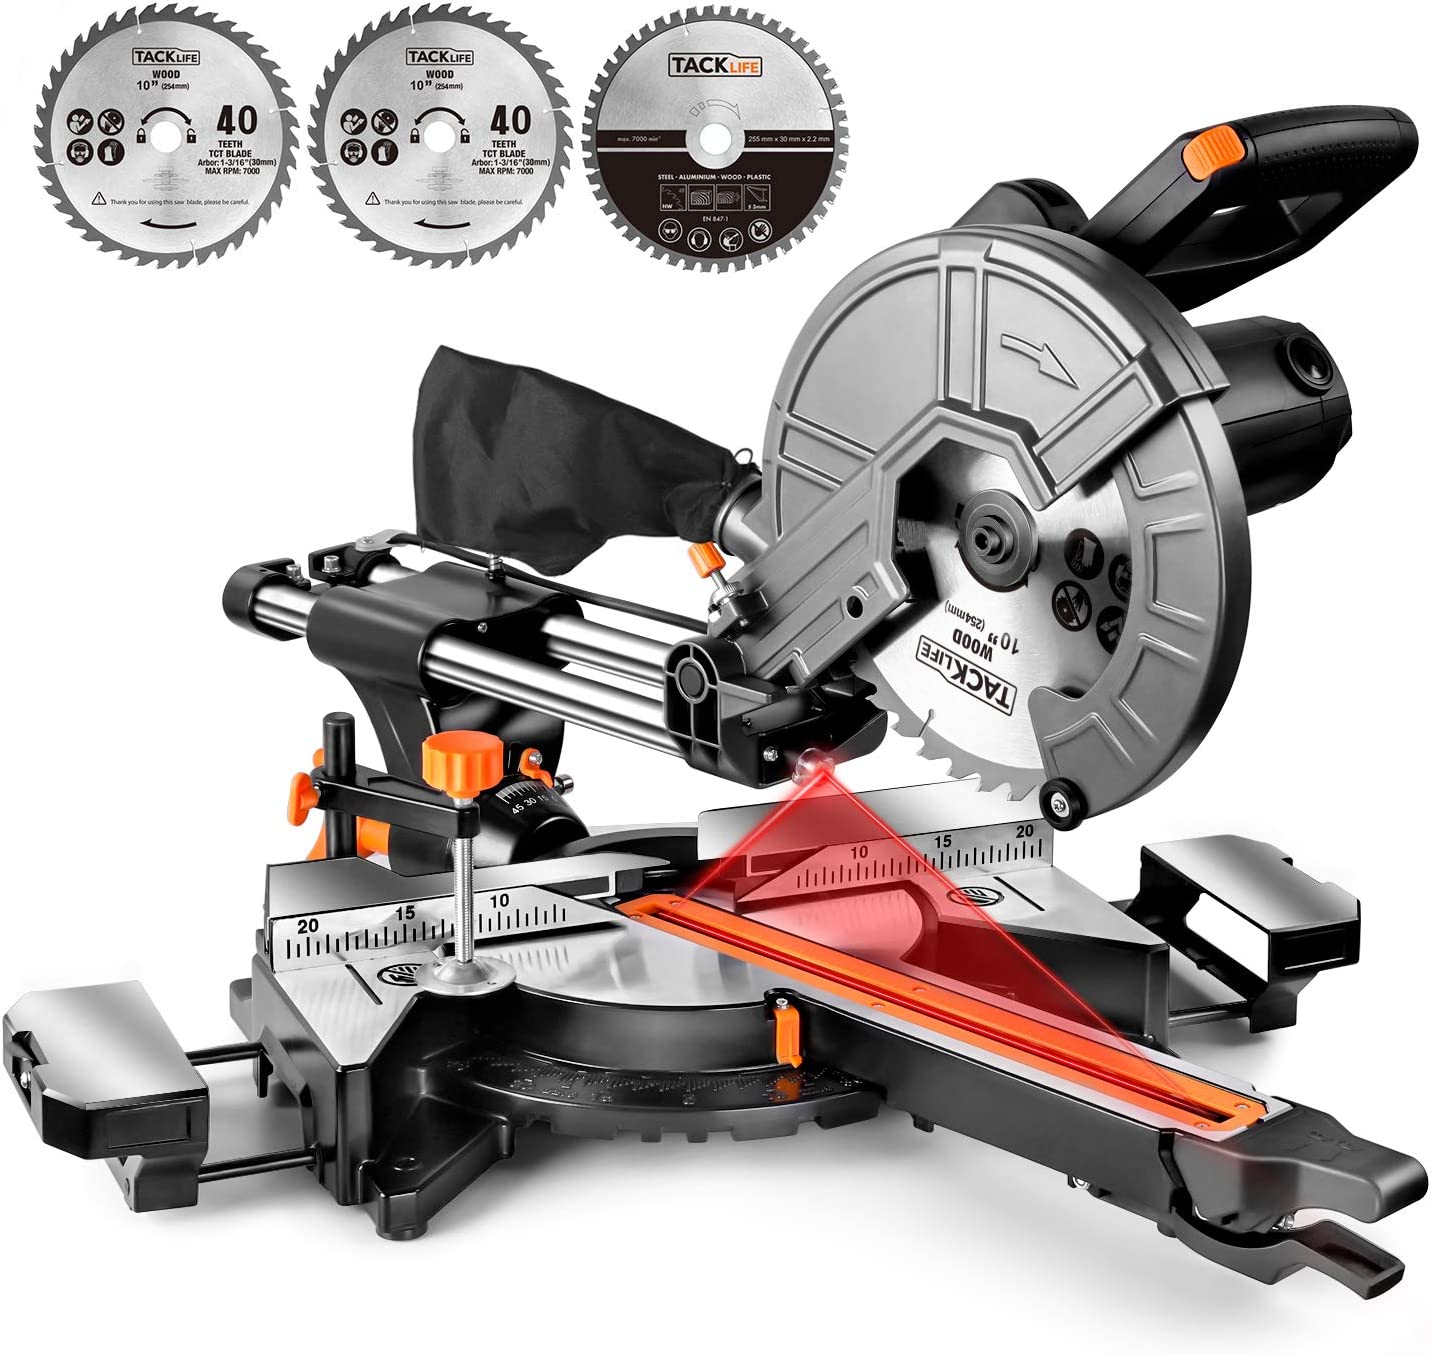 Miter Saw, TACKLIFE Advanced 15 Amp Sliding Compound Miter Saw, Double Speed 4500 RPM 3200 RPM , Bevel Cut 0 -45 with Laser, Extension Table, Chip Bag, Iron Blade Guard, 3 Blades – EMS01A